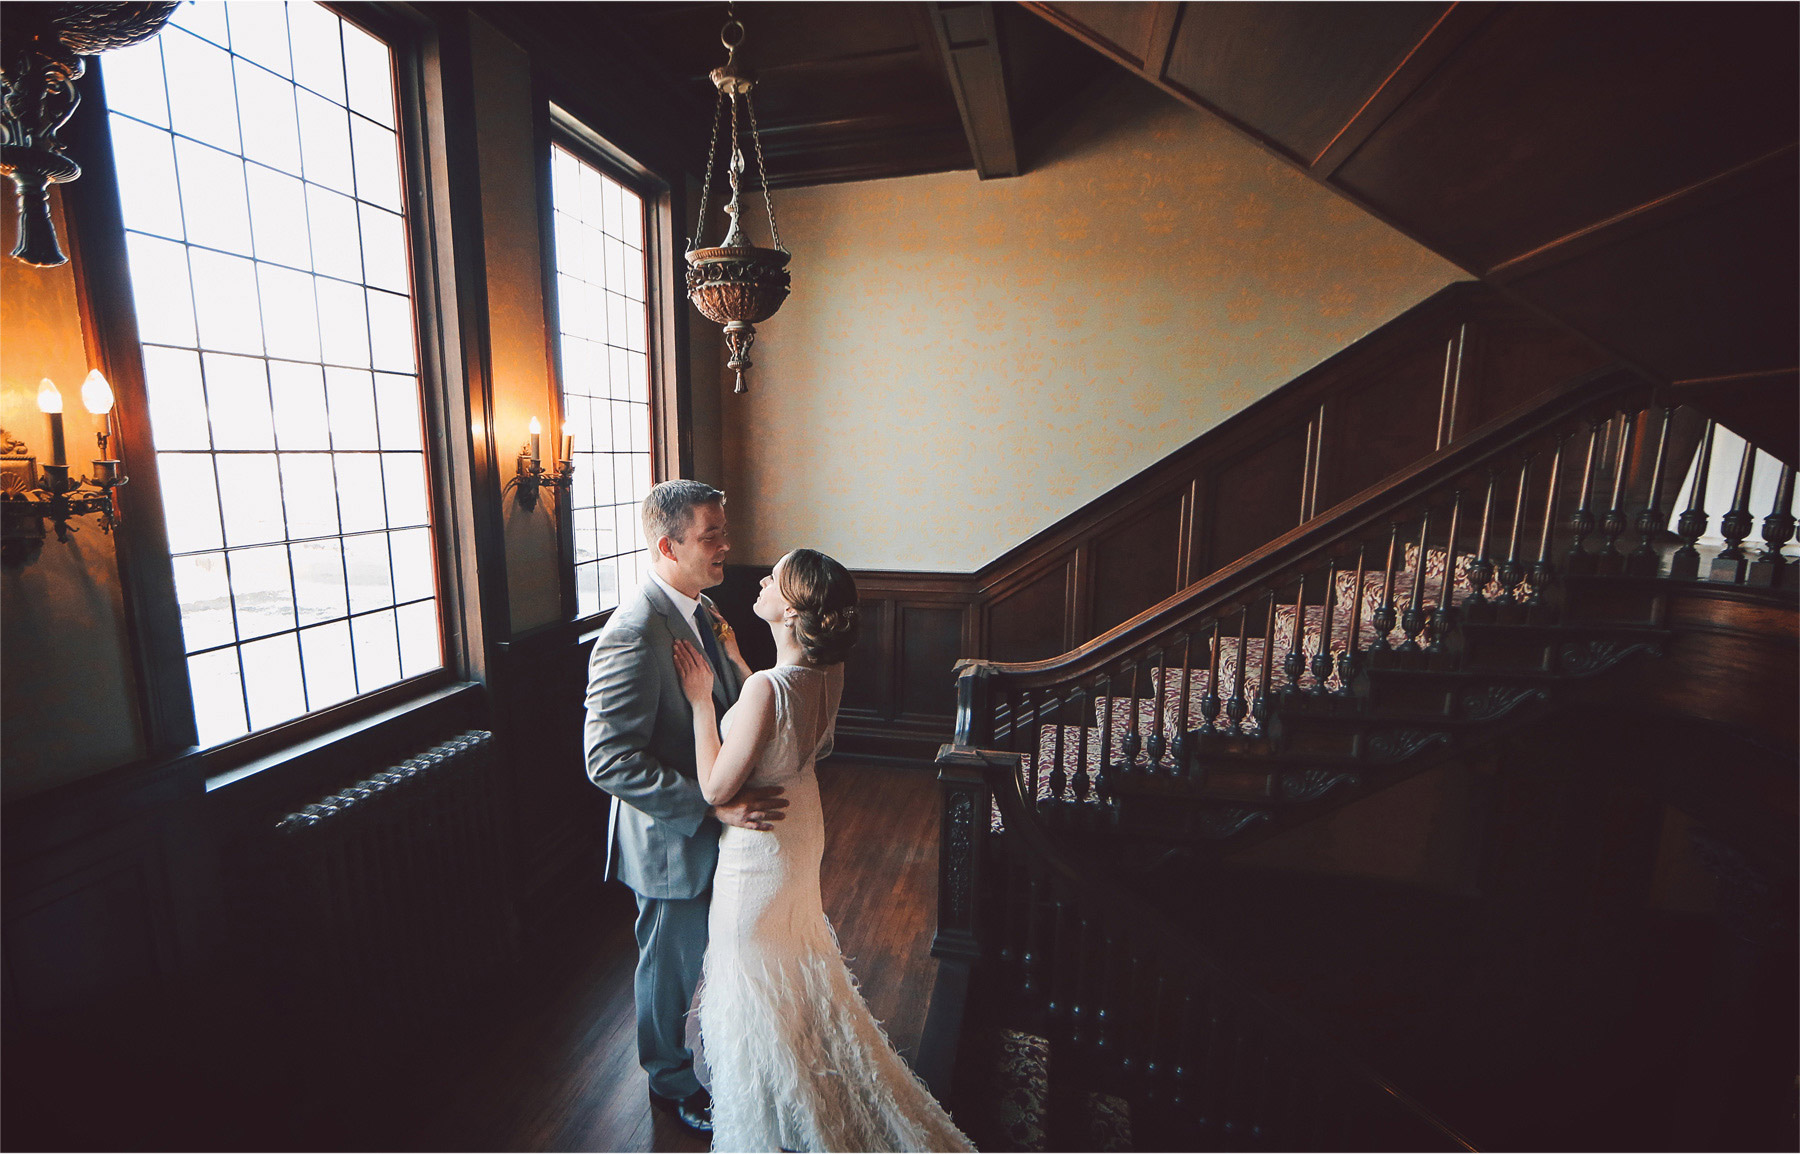 07-Minneapolis-Minnesota-Wedding-Photographer-by-Andrew-Vick-Photography-Summer-Semple-Mansion-Bride-Groom-Embrace-First-Meeting-Look-Vintage-Stephanie-and-Robert.jpg